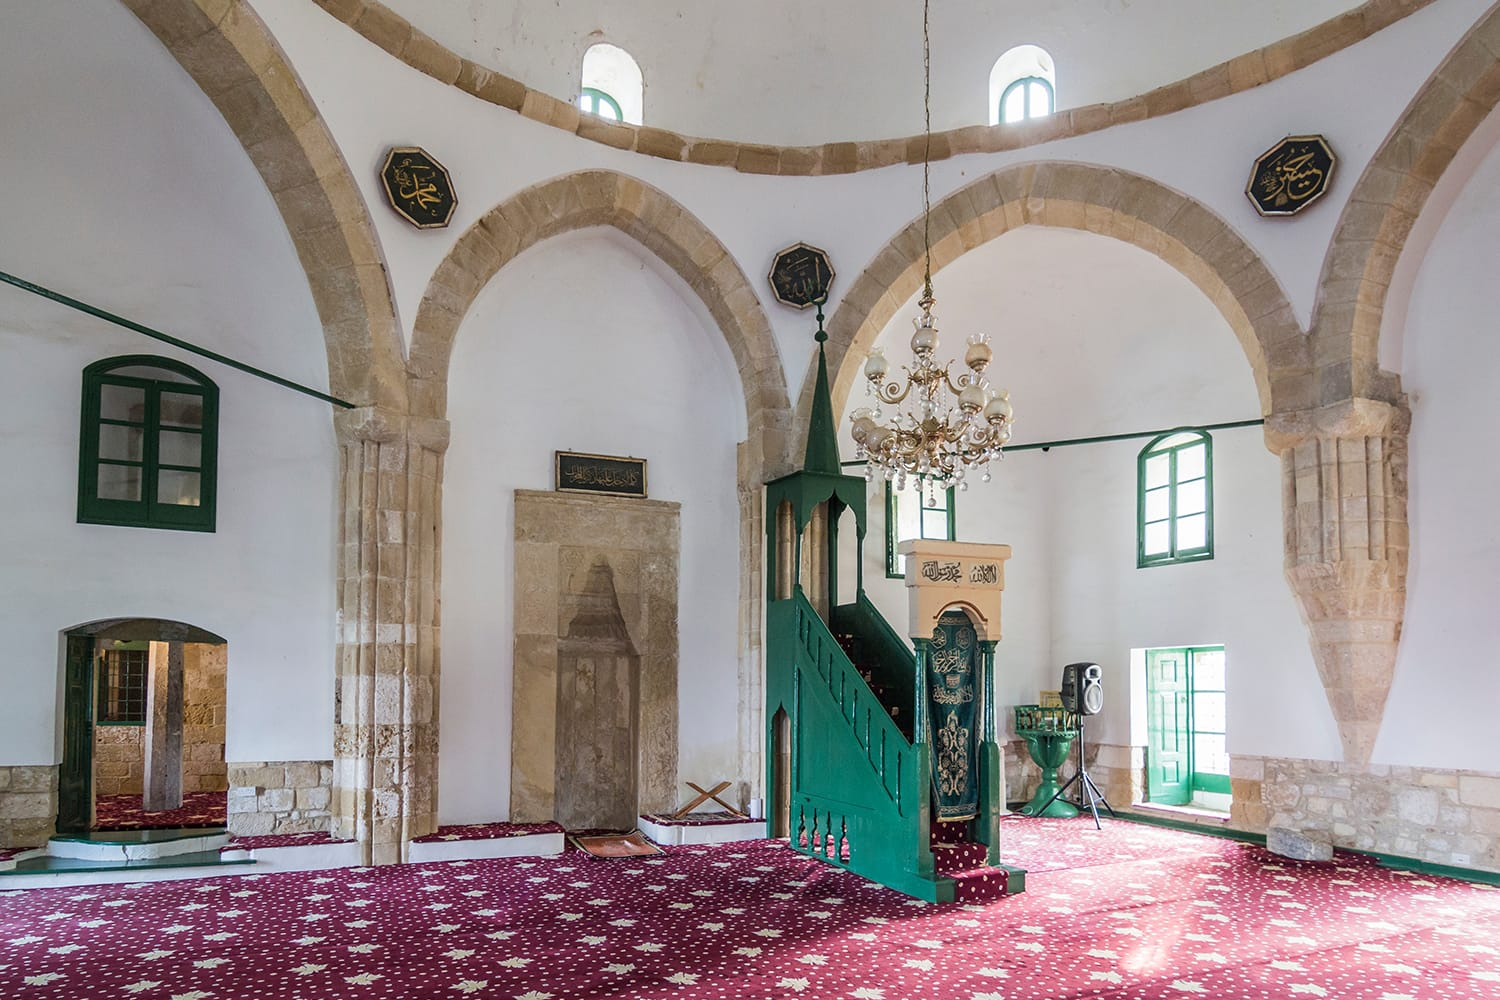 he mikhrab, minbar and interior of Hala Sultan Tekke mosque, one of the holiest islamic worship places